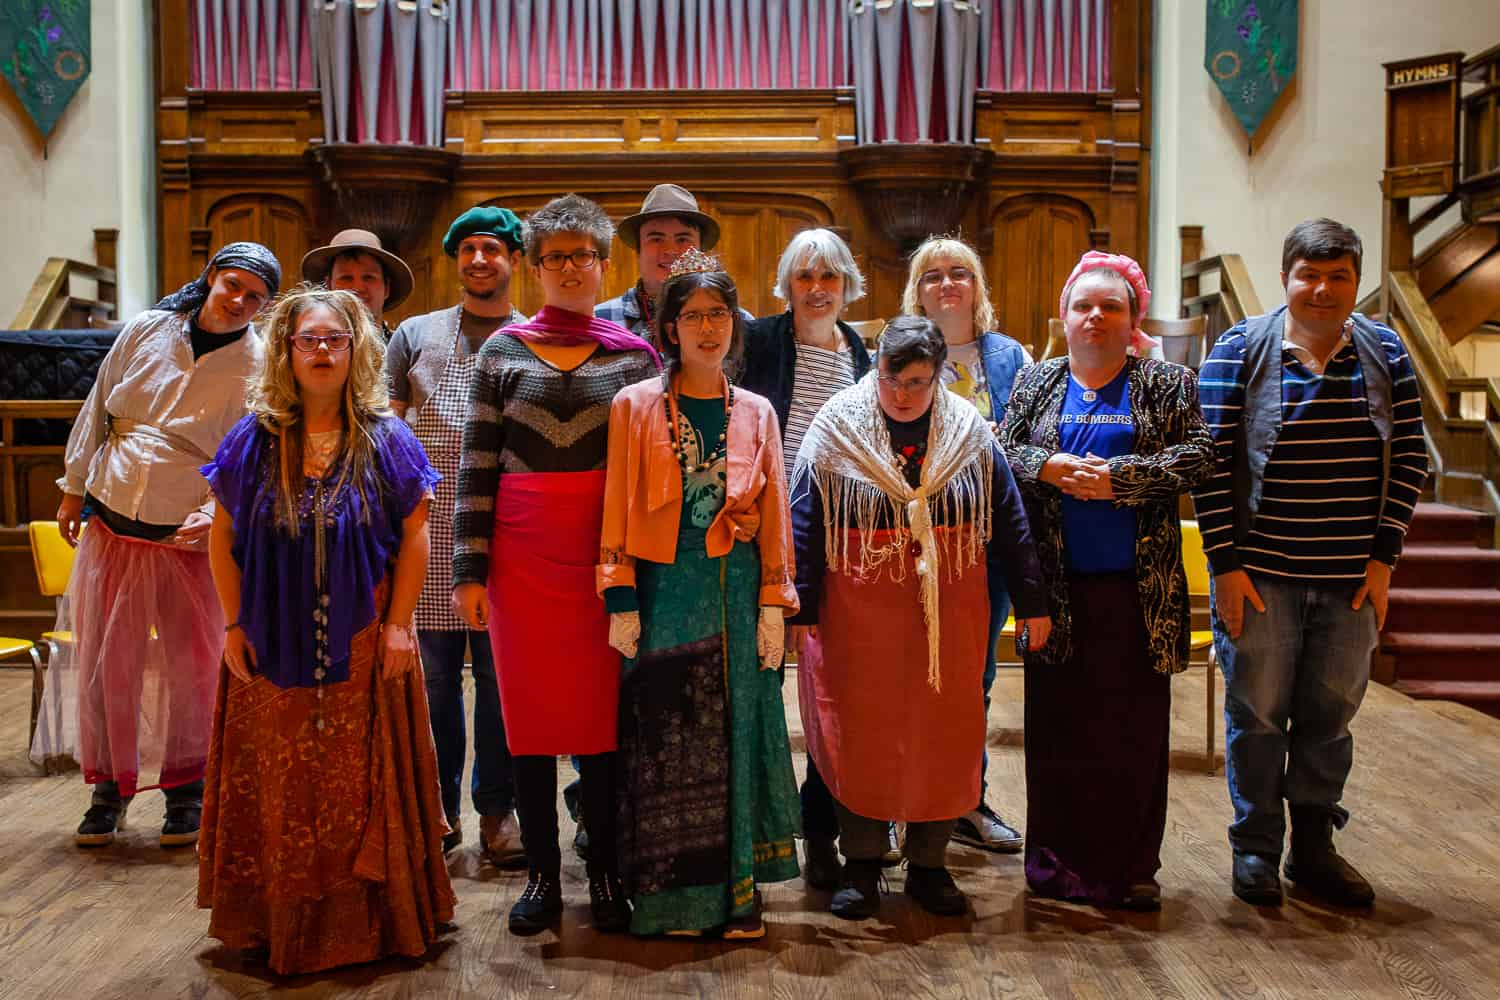 Theatre program promotes inclusion for people with disabiliites